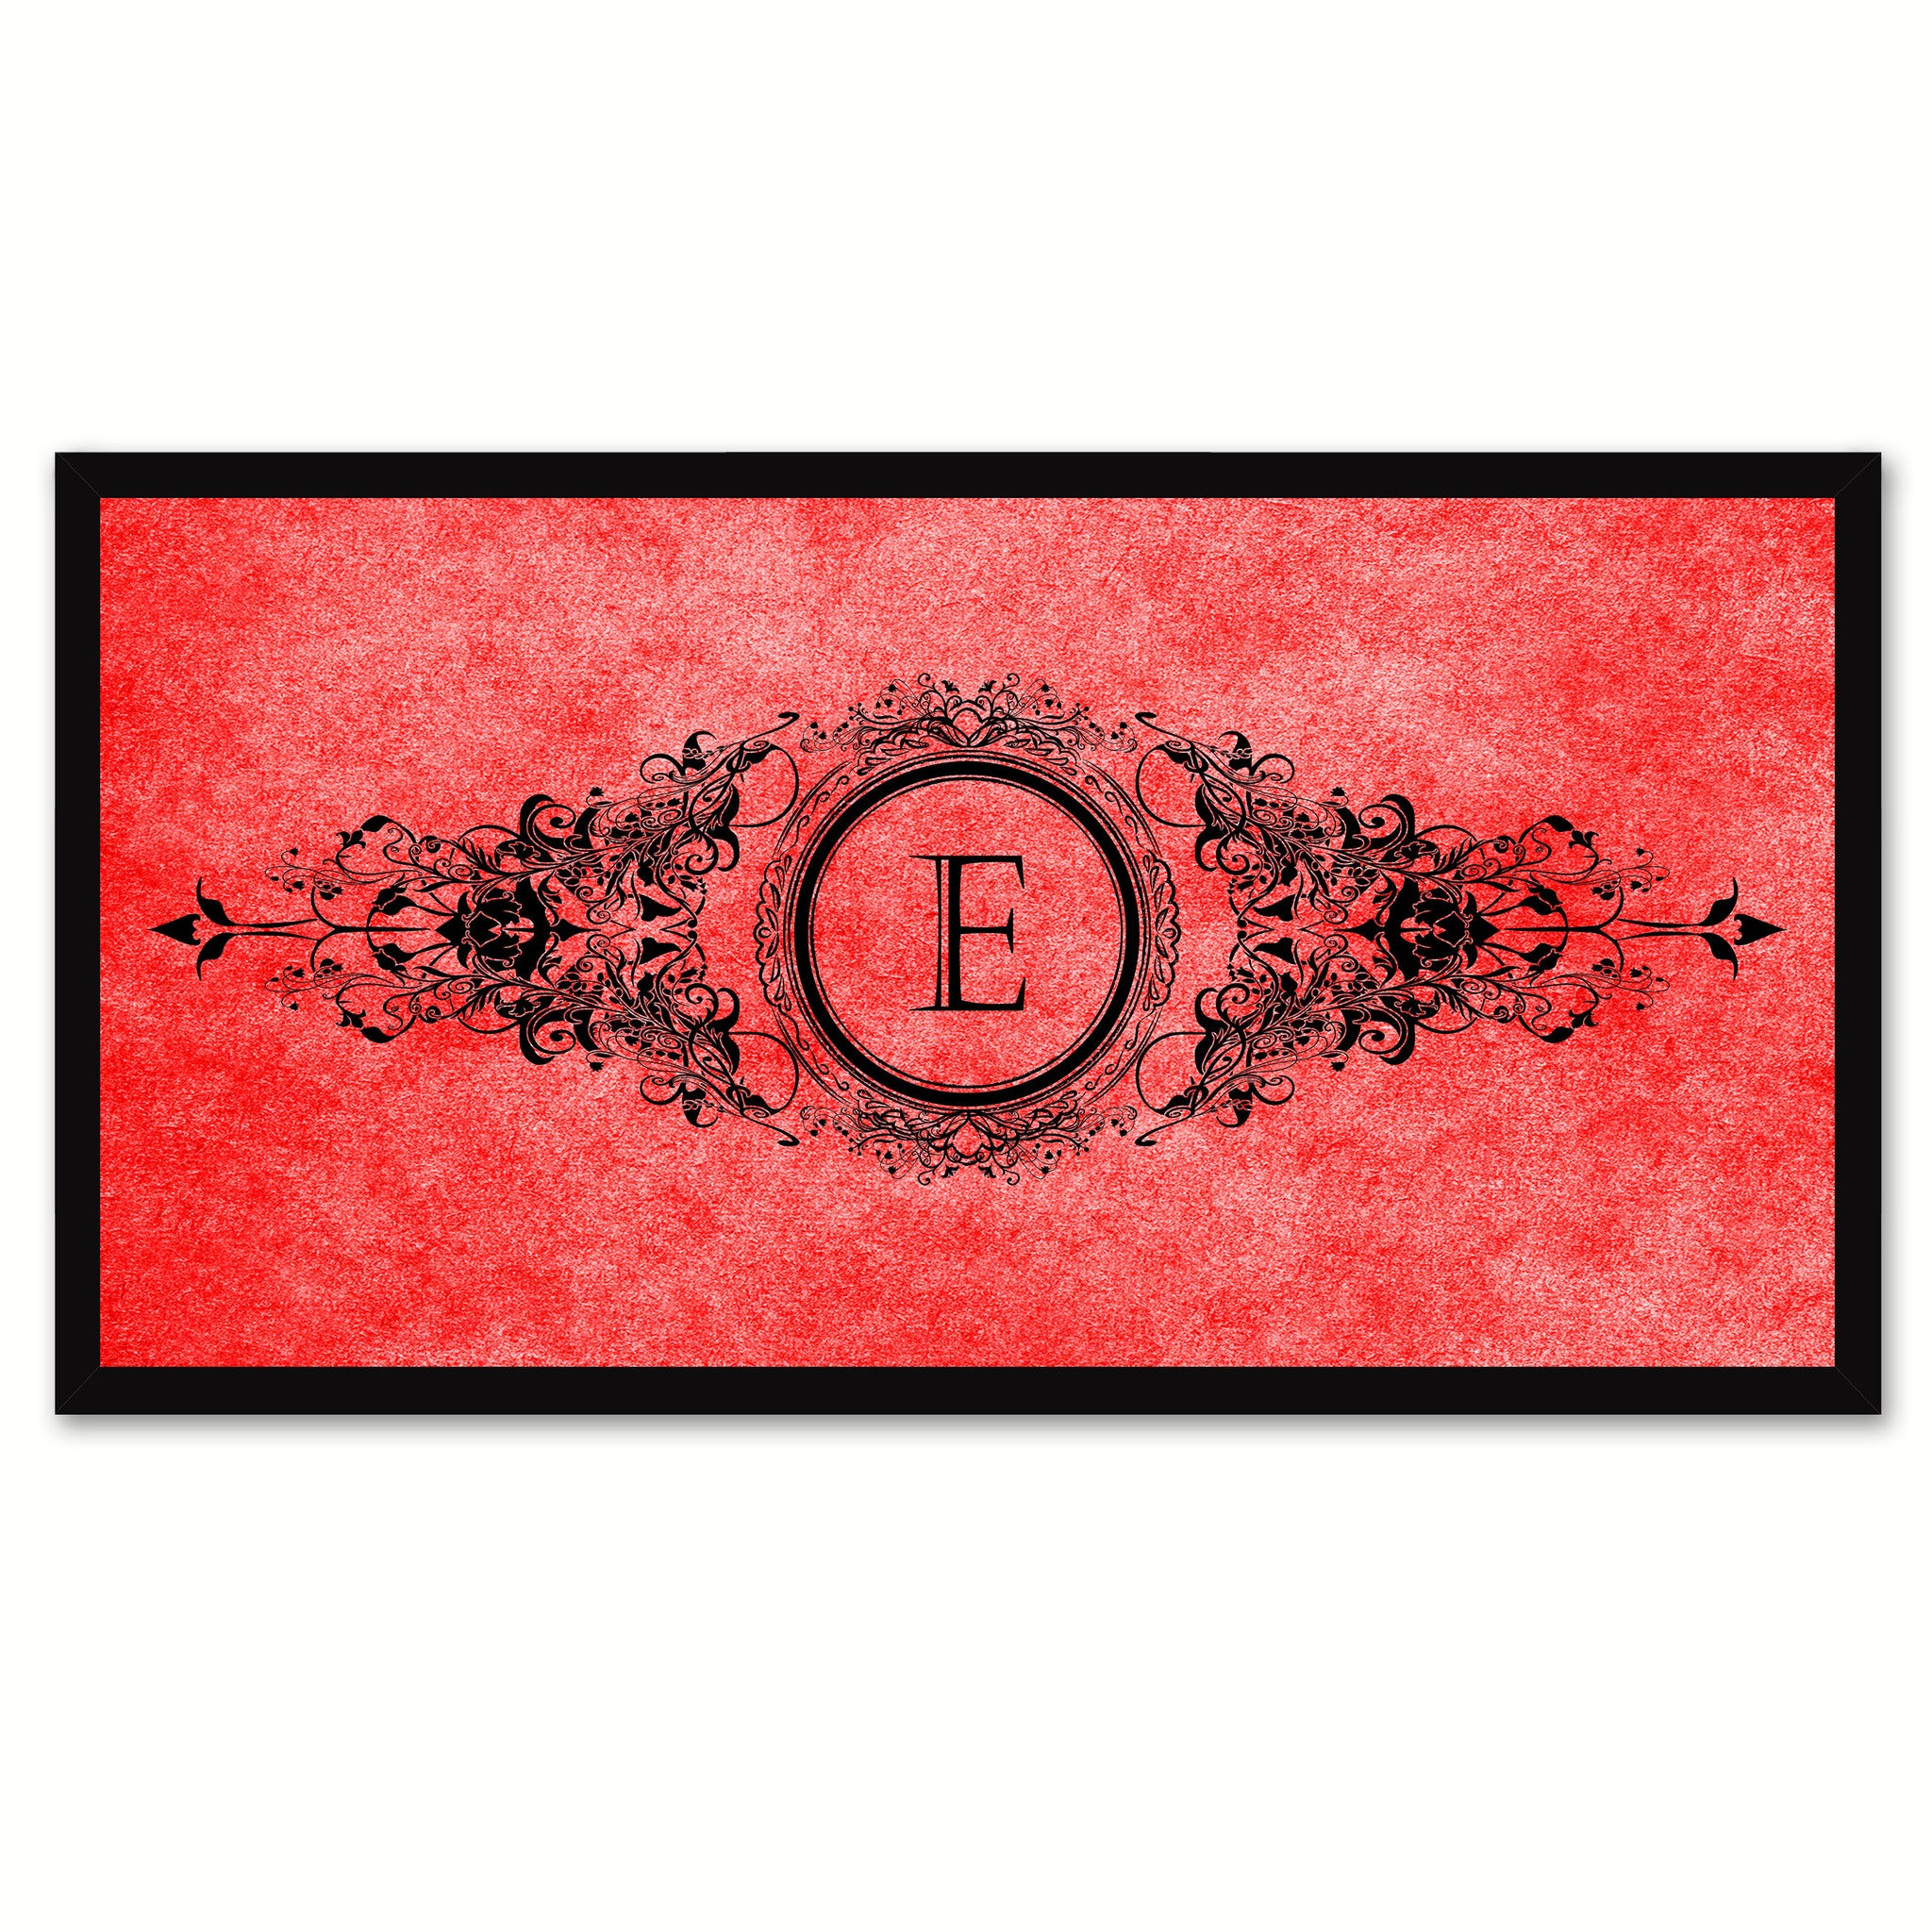 Alphabet Letter E Red Canvas Print Black Frame Kids Bedroom Wall Décor Home Art